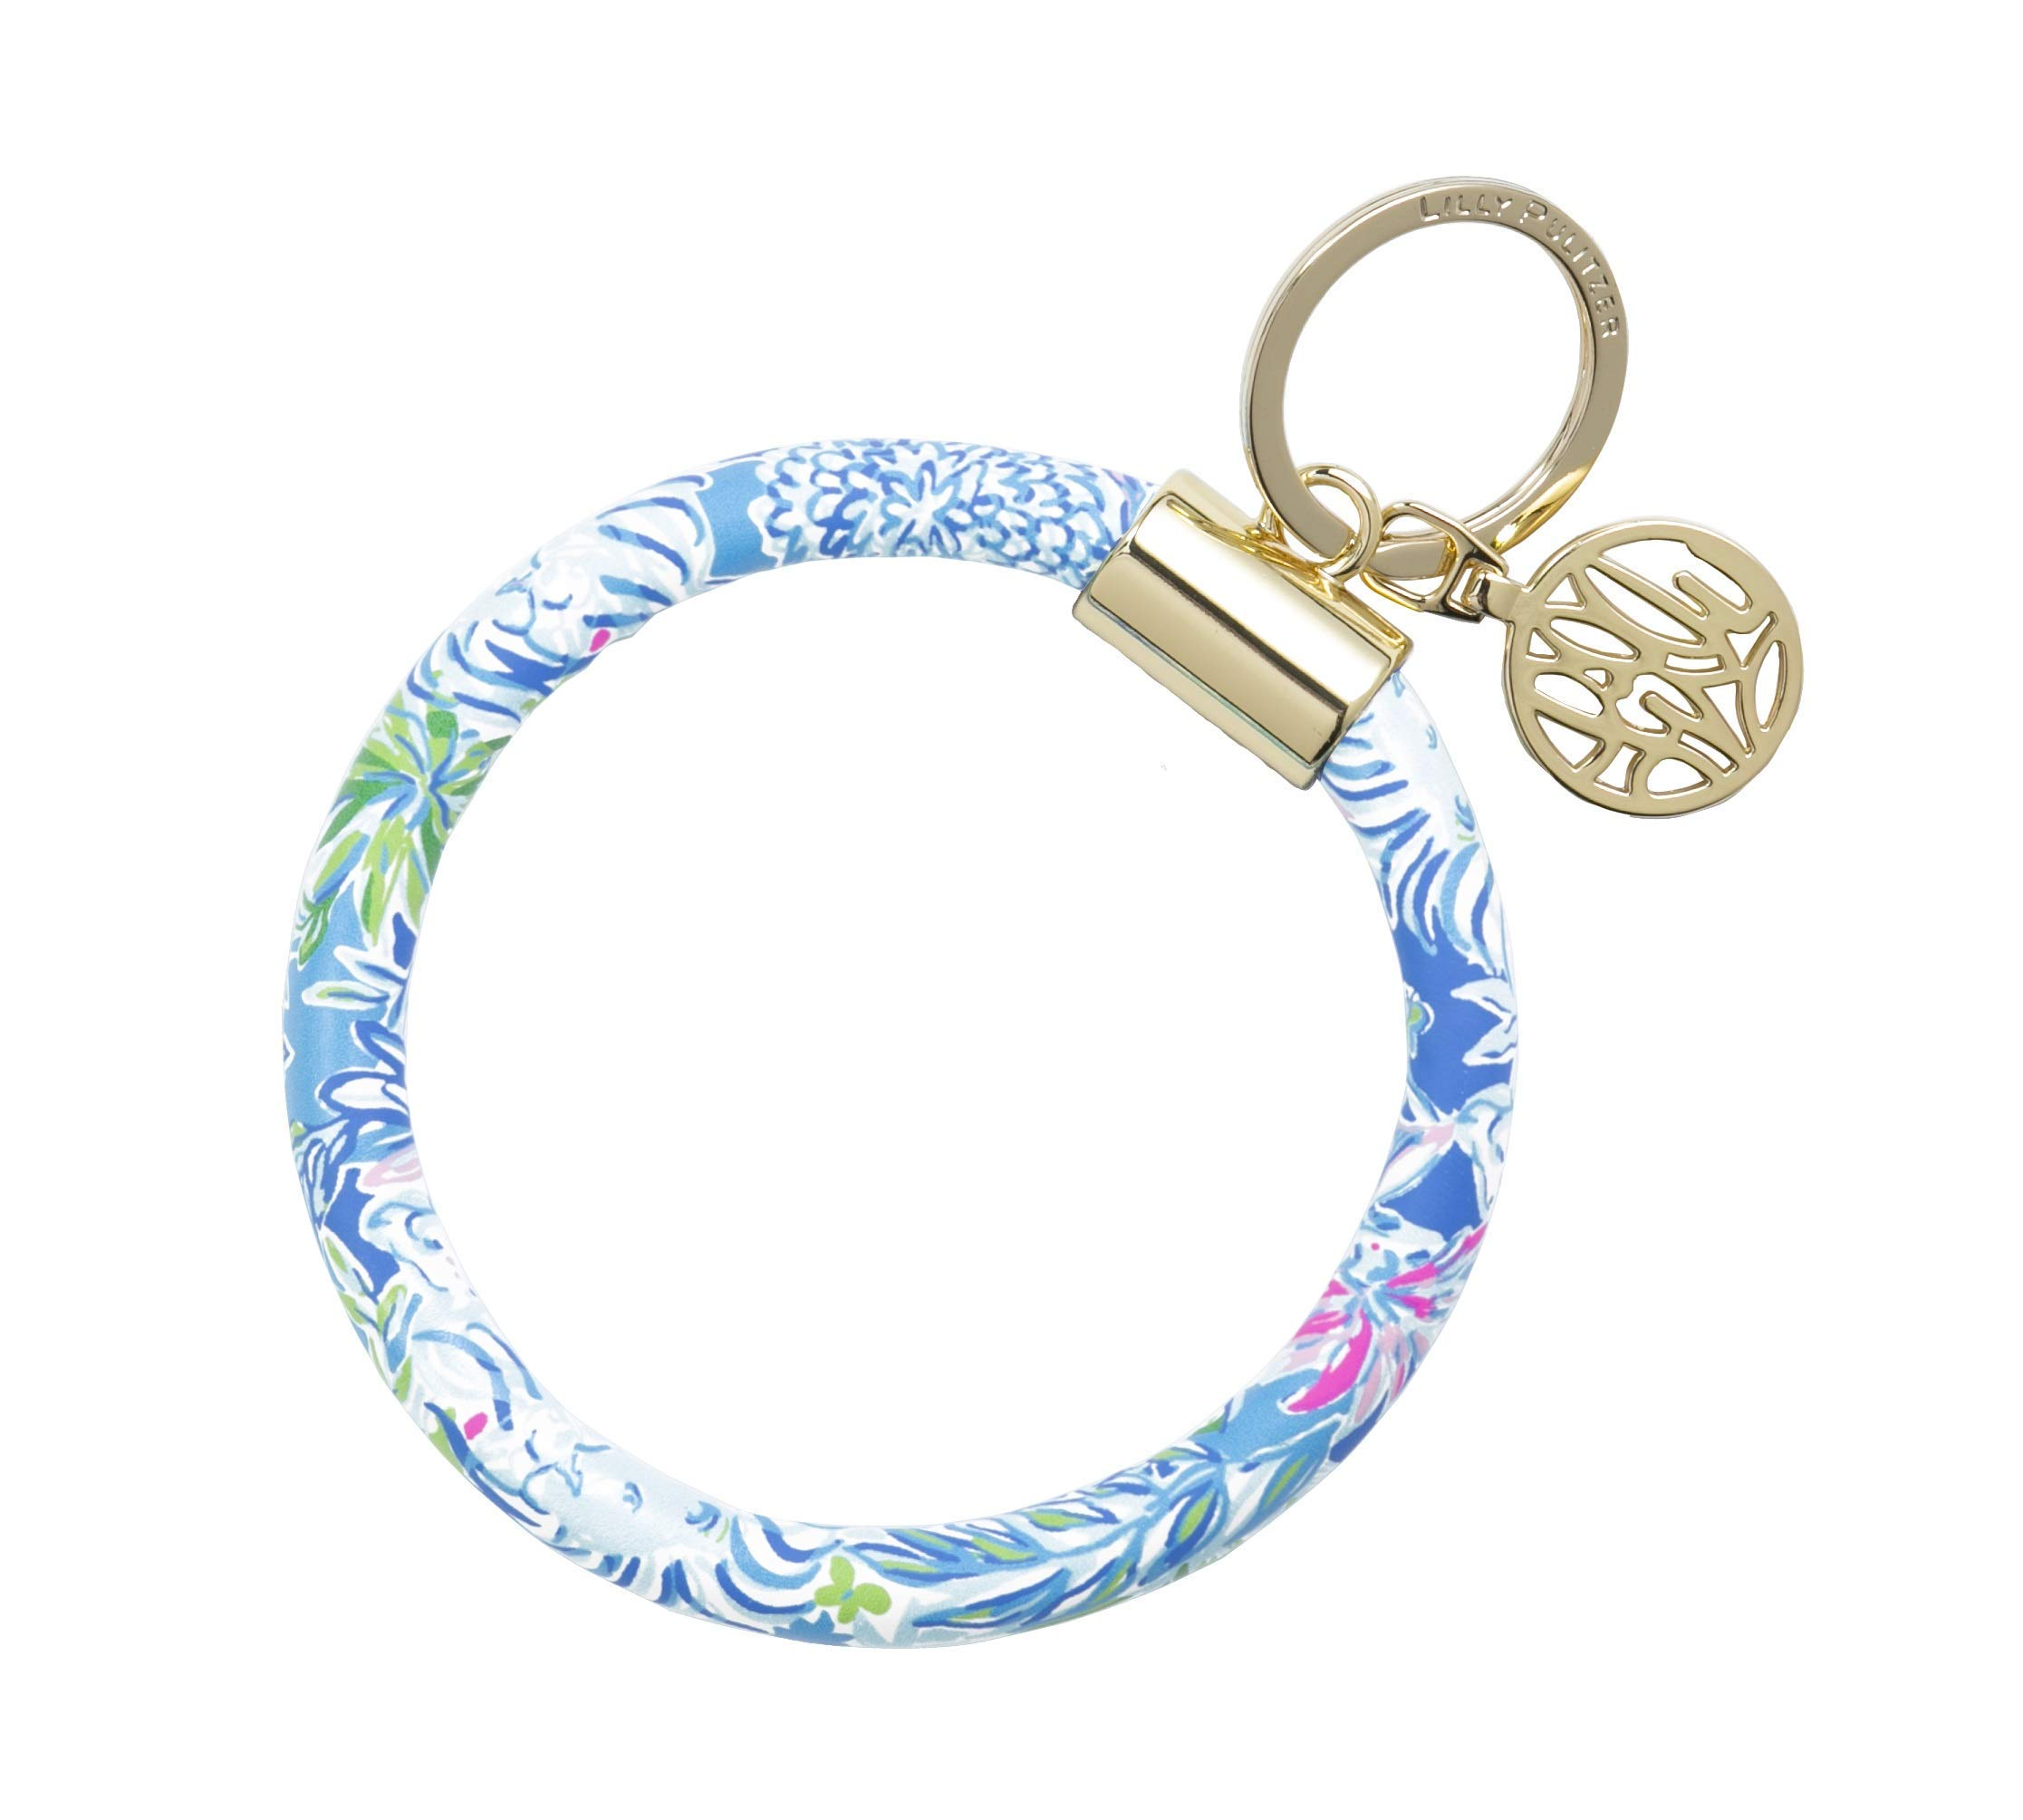 Lilly Pulitzer Bracelet Key Ring Chain, Lion Around by Lilly Pulitzer